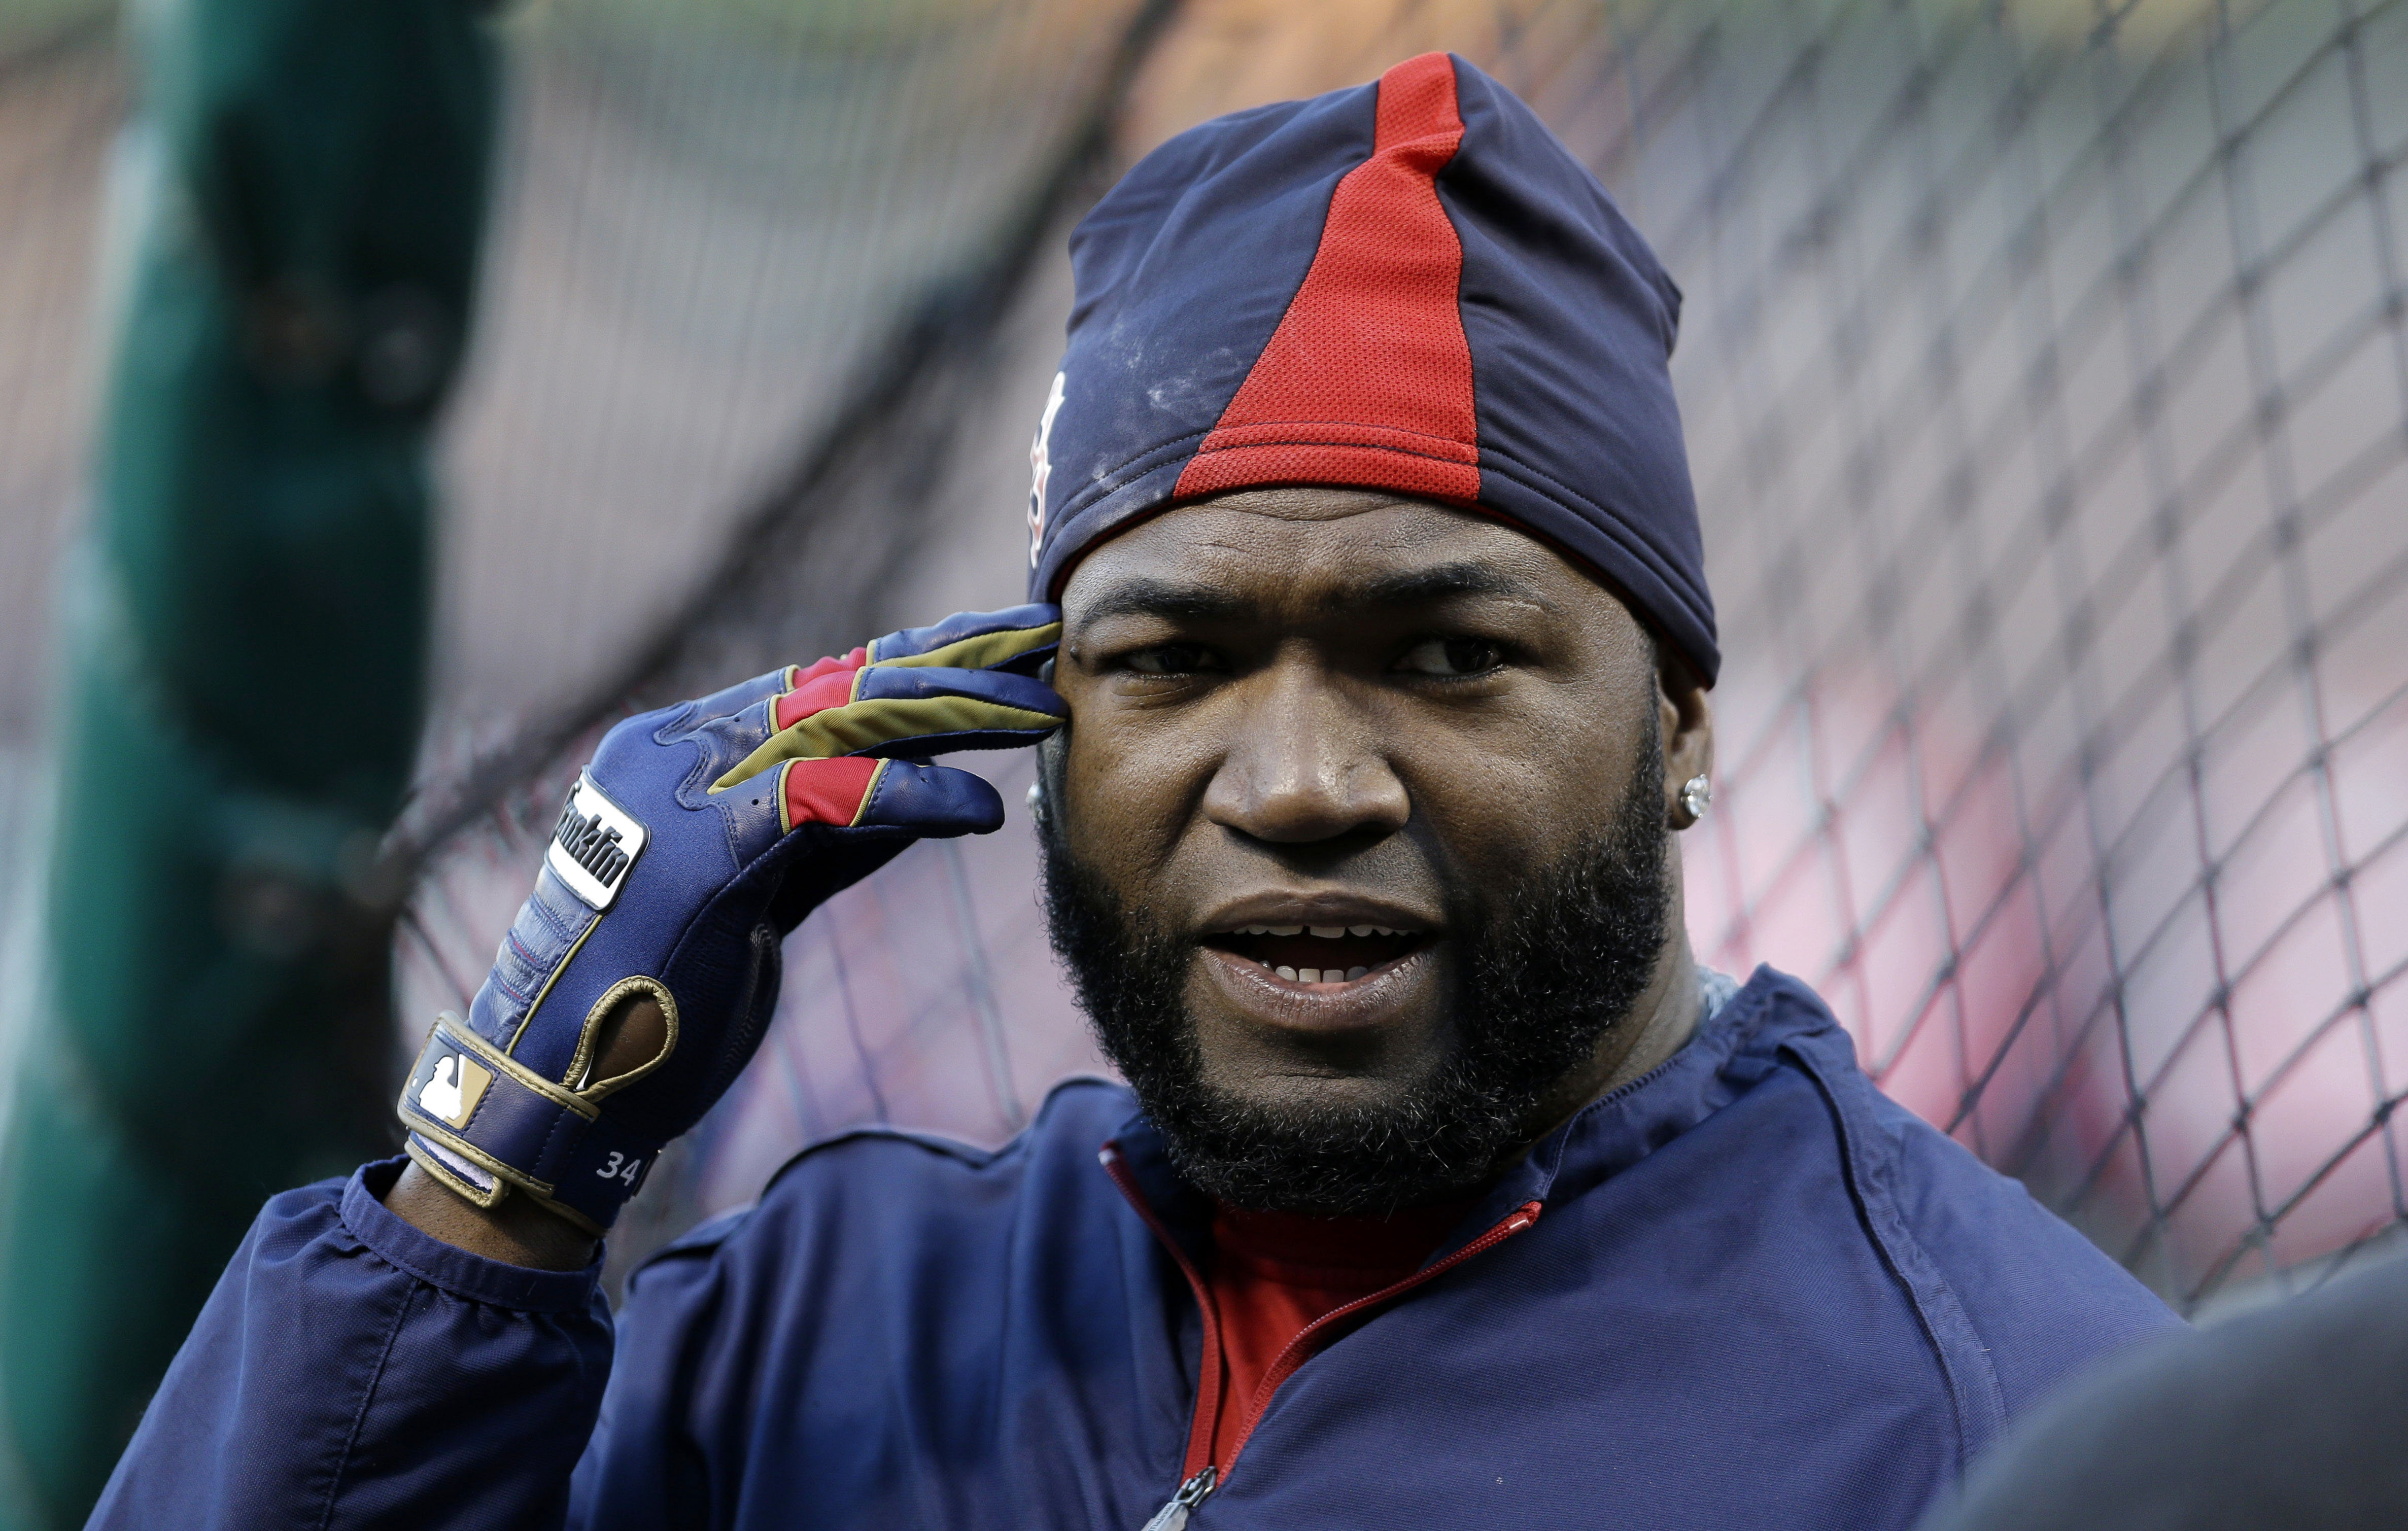 David Ortiz will play first base in Game Three tonight at Busch Stadium in St. Louis because the Red Sox need his bat in the lineup.